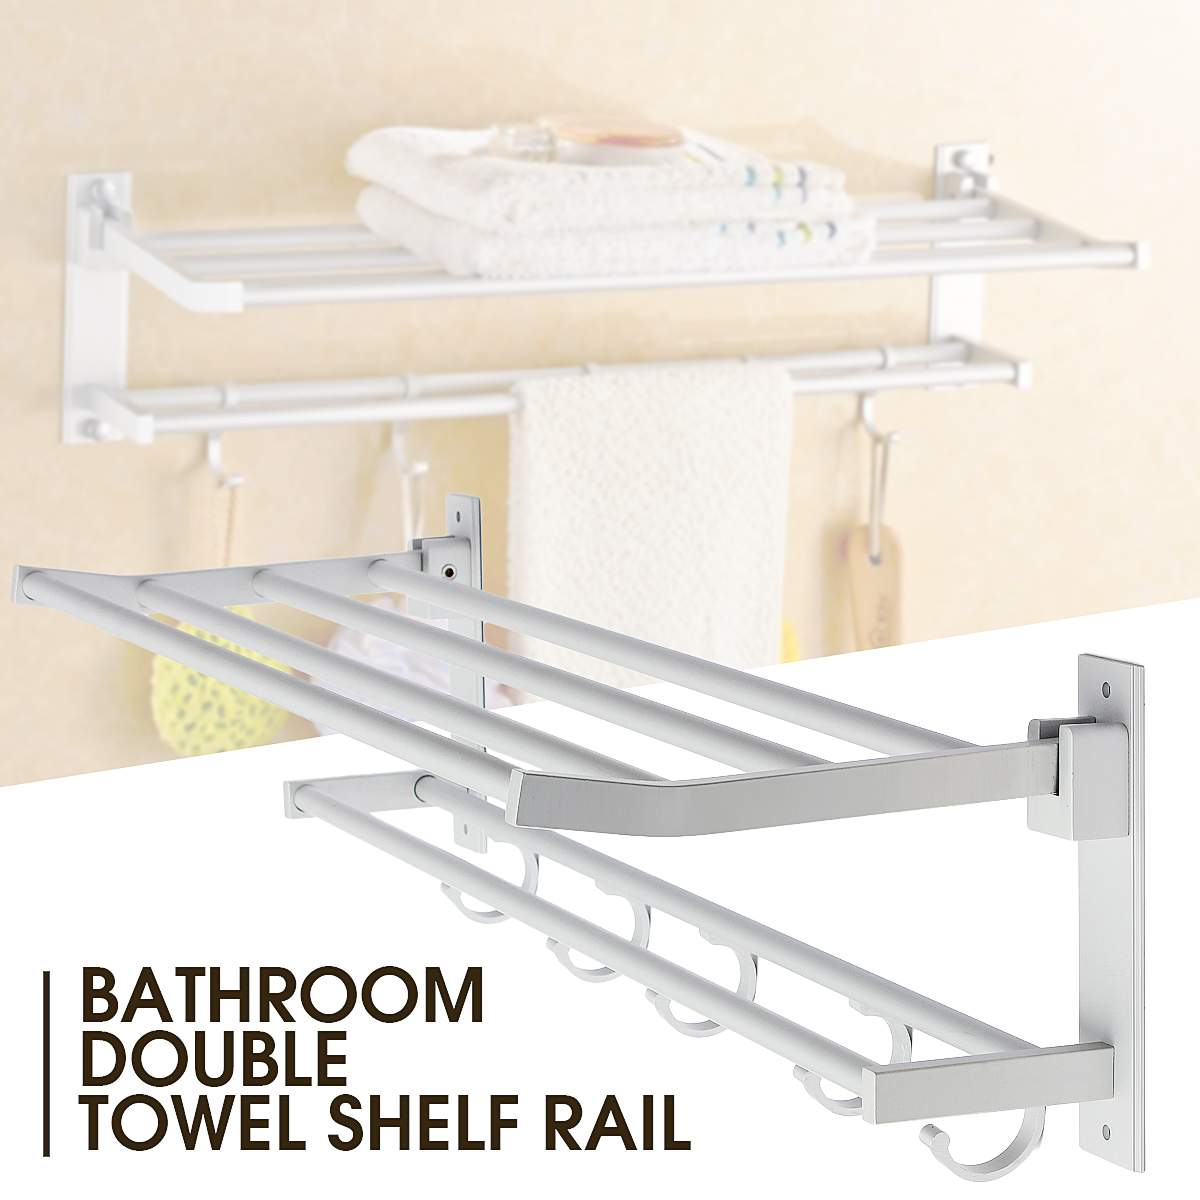 Alumimum 2 Layer Foldable Bathroom Towel Rack Holder Wall Mounted Storage Hanger Kitchen Hotel Towel Clothes Shelf With 5 Hooks